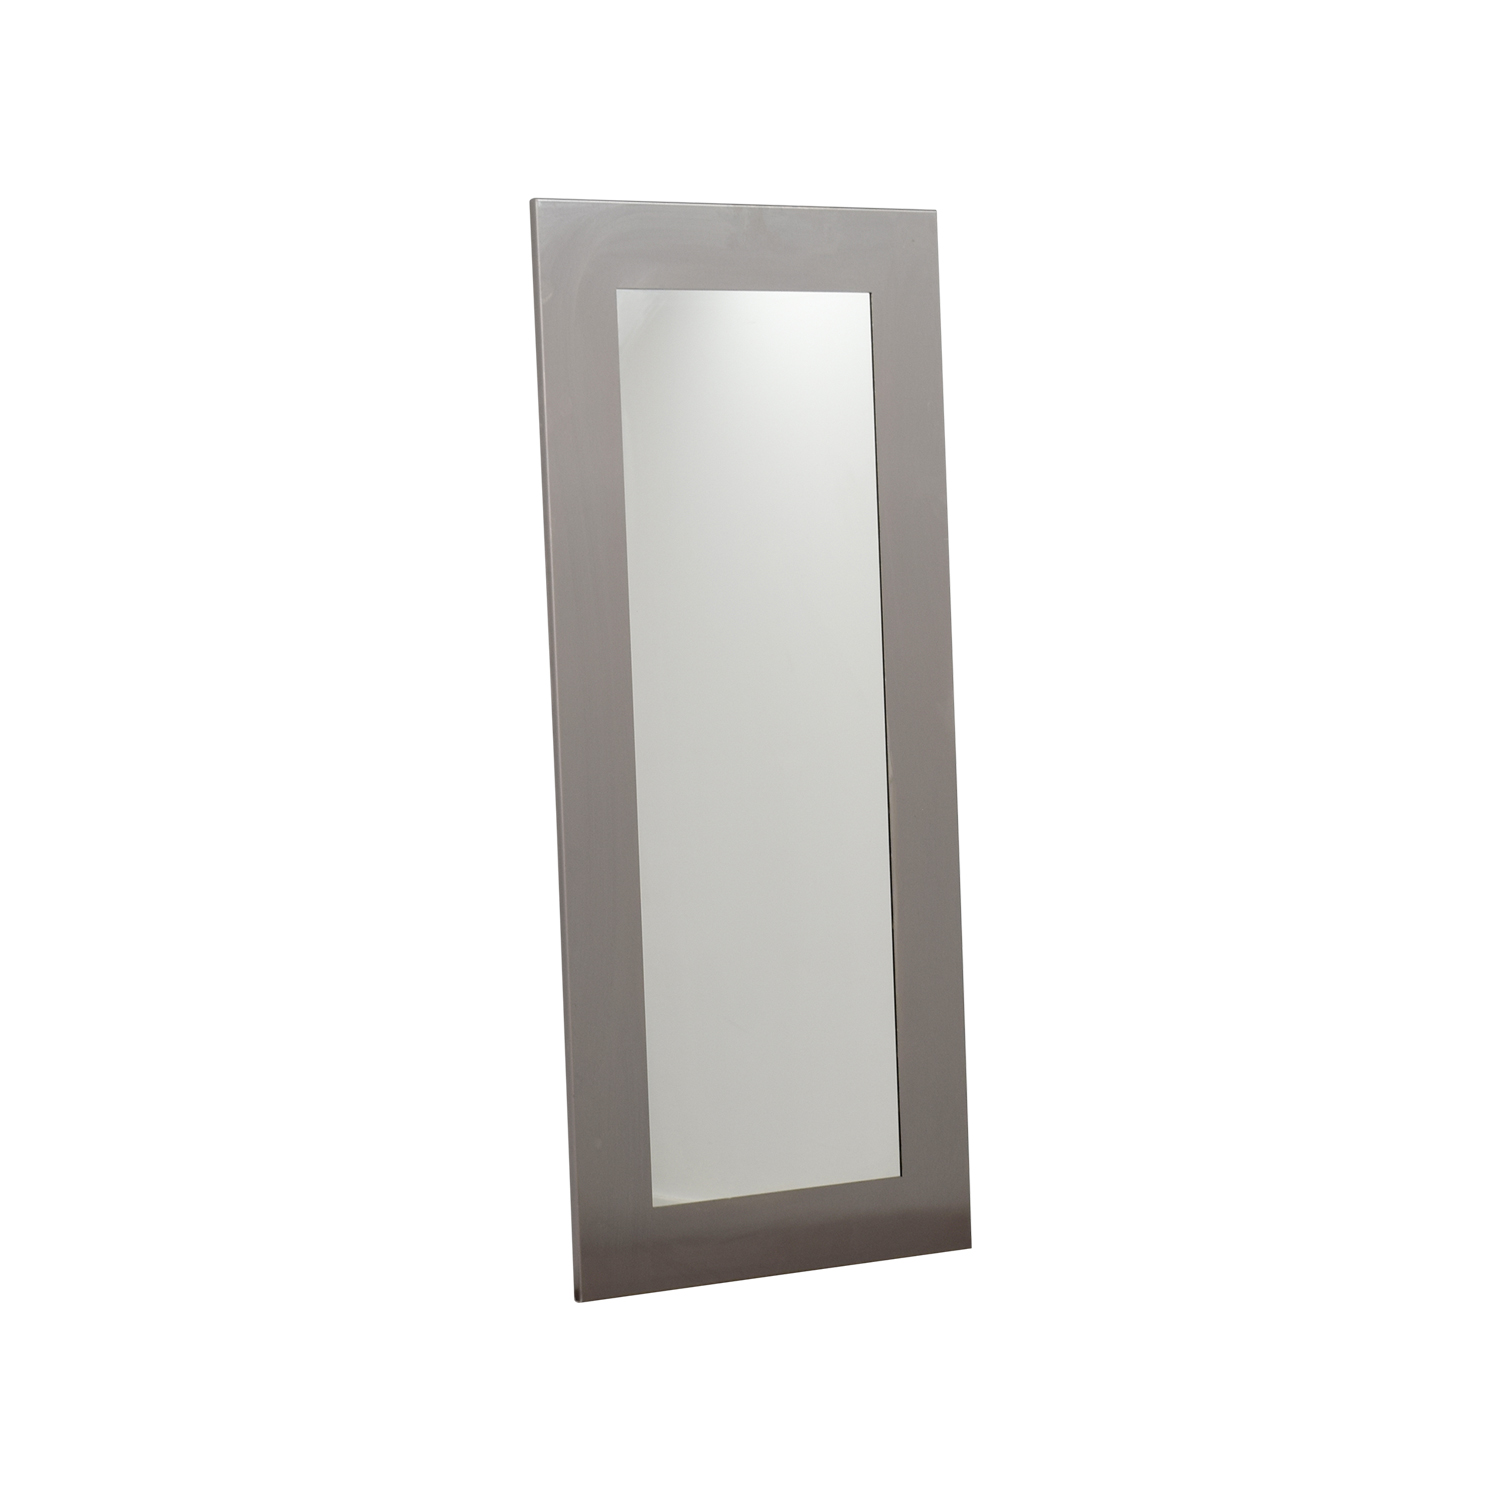 Room & Board Room & Board Manhattan Mirror Mirrors